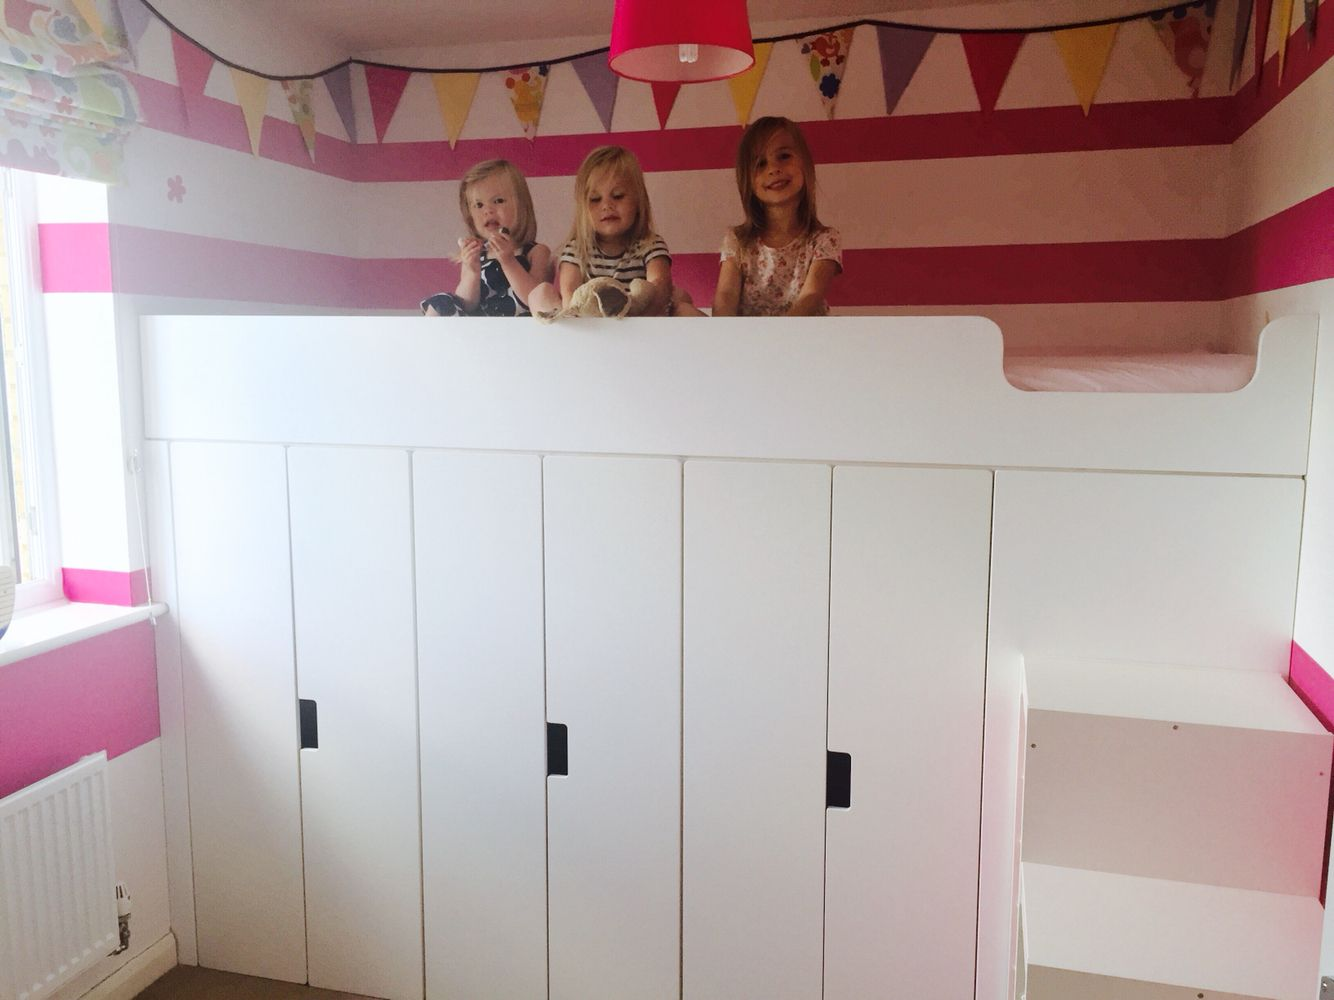 Ikea Hacks Stuva Loft Bed Stuva Hack Bed With Storage Ideas For The